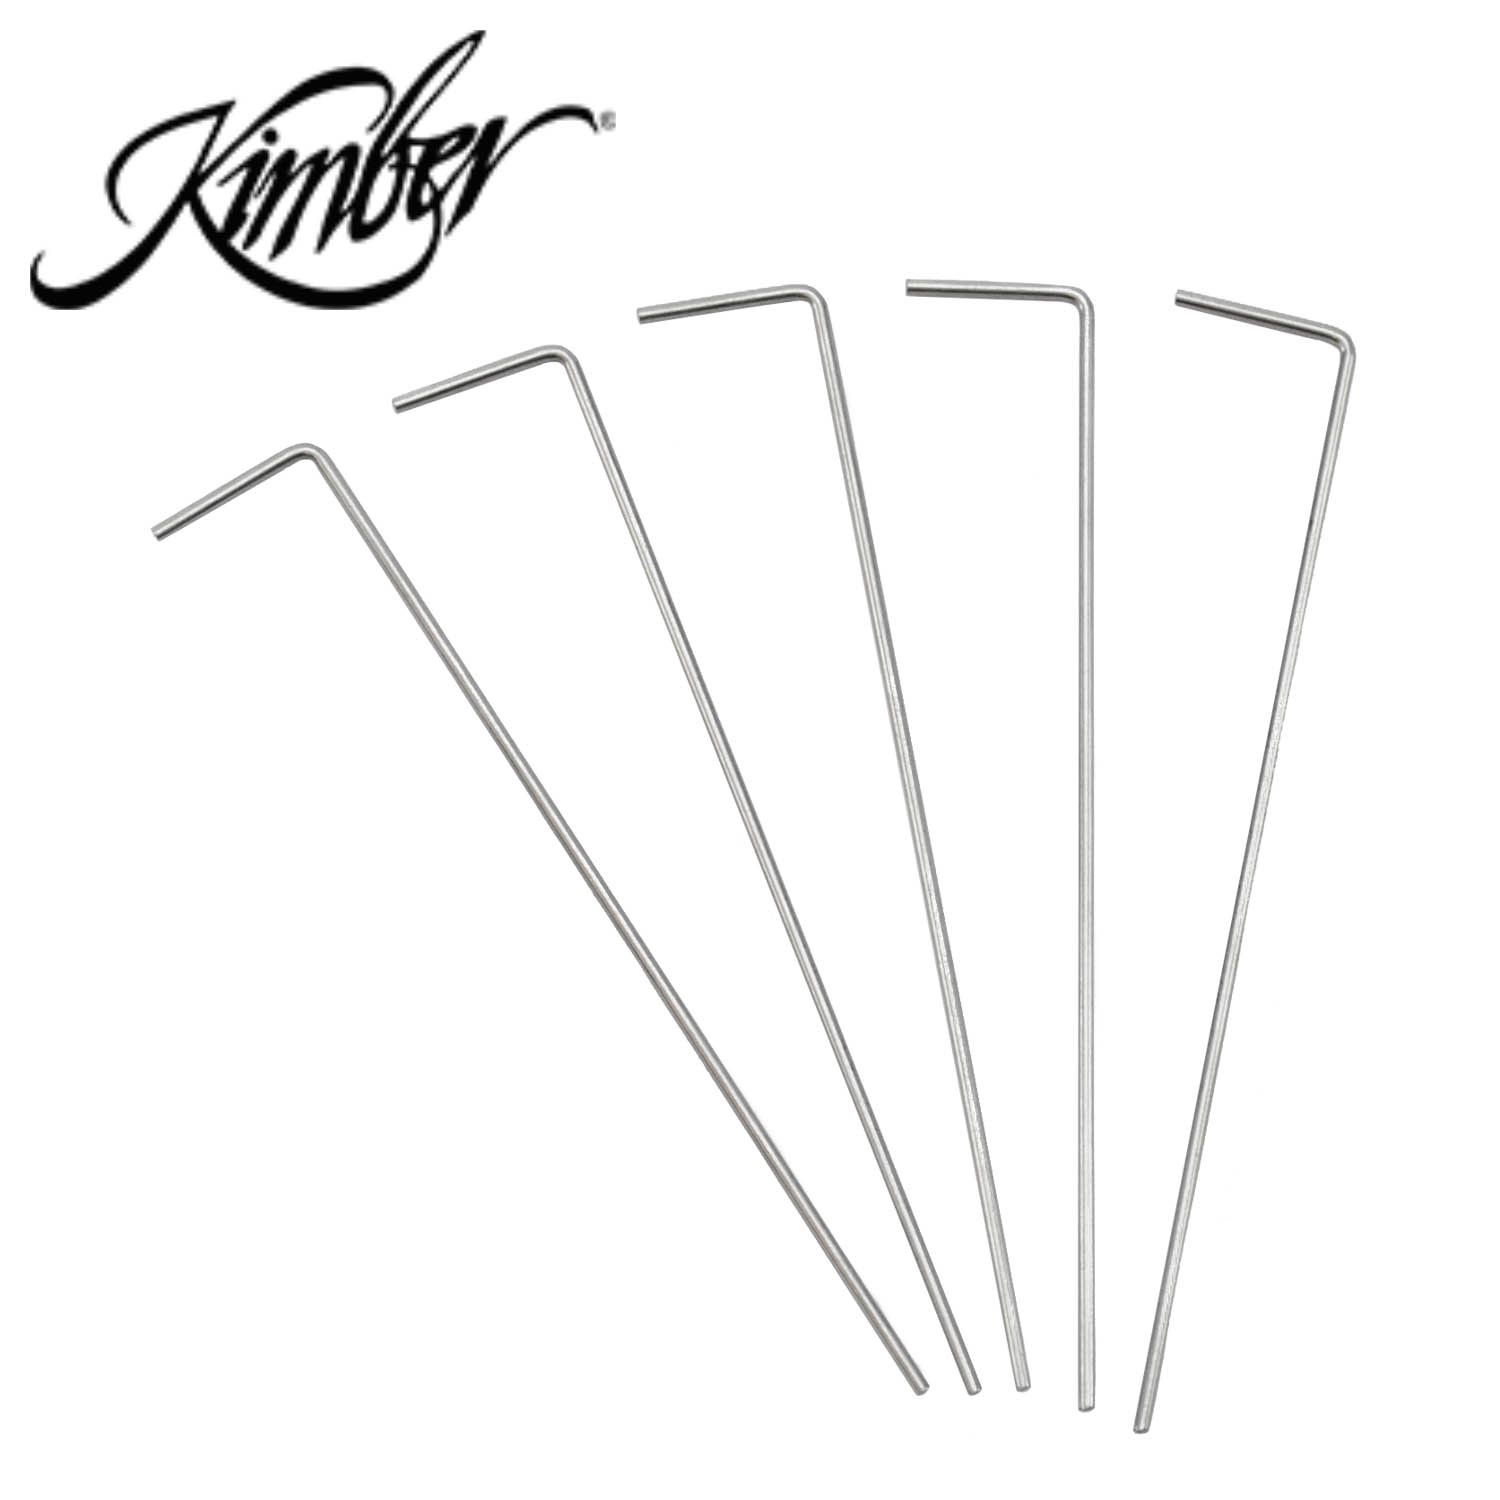 Kimber 1911 Takedown Tool, Package of 5: Midwest Gun Works